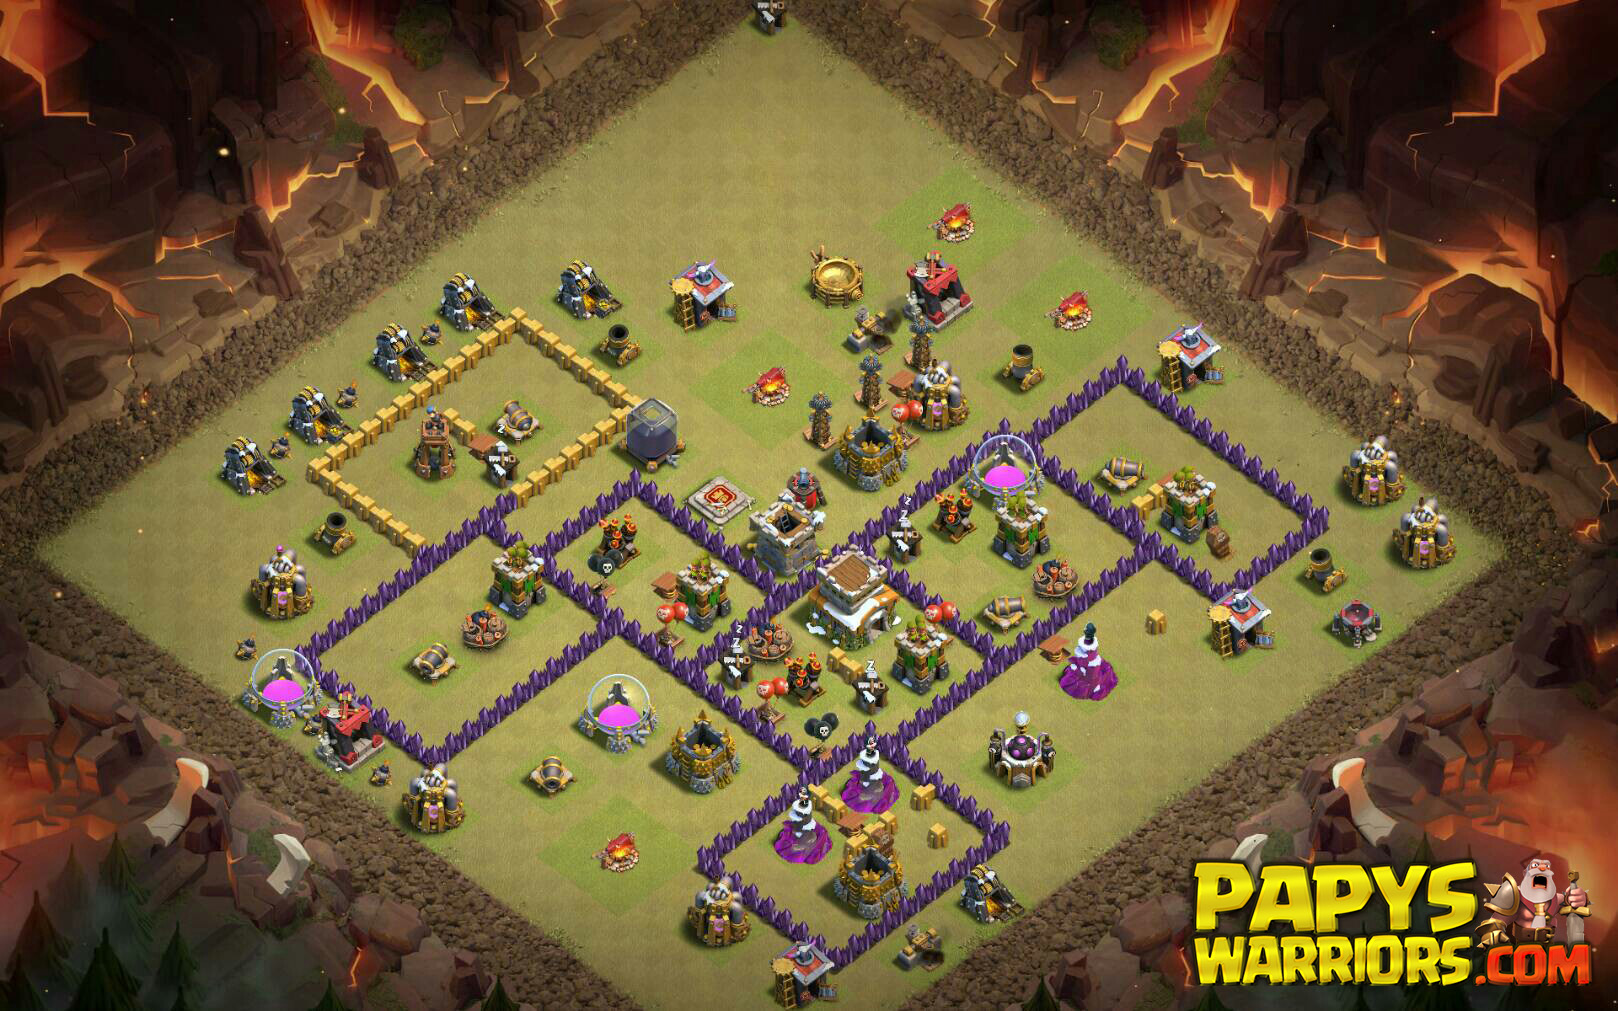 WAR BASE TH8 PAPYS WARRIORS 2